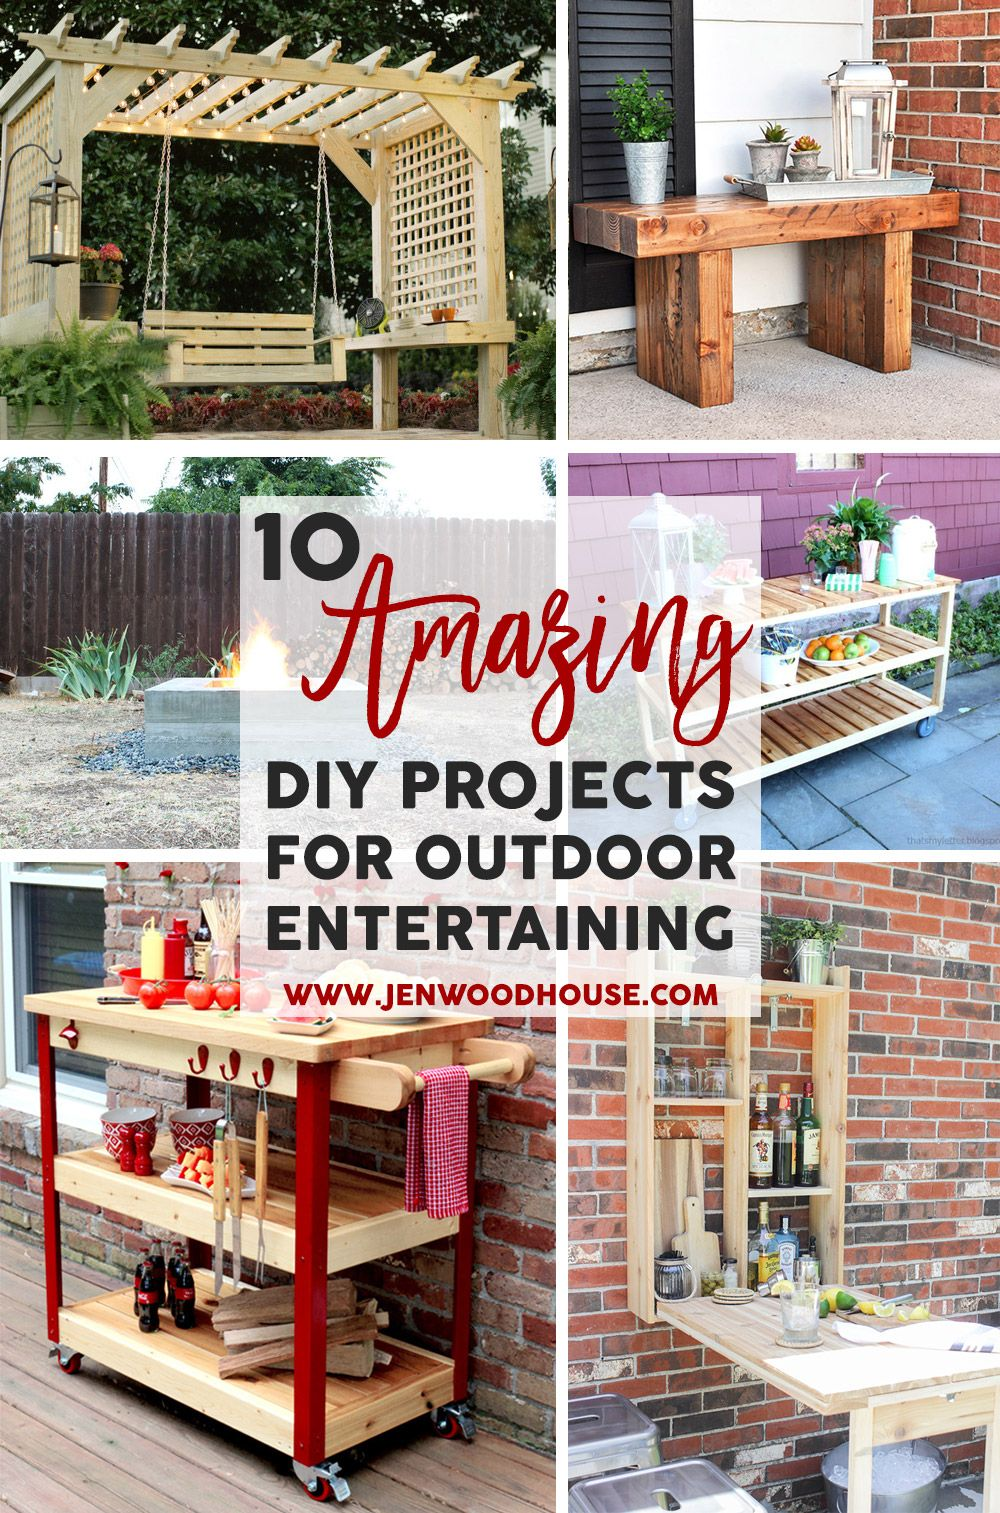 Spruce Up Your Backyard And Bring Your Outdoor Entertaining Game To The Next Level With These 10 Amazing And Diy Outdoor Outdoor Entertaining Outdoor Projects